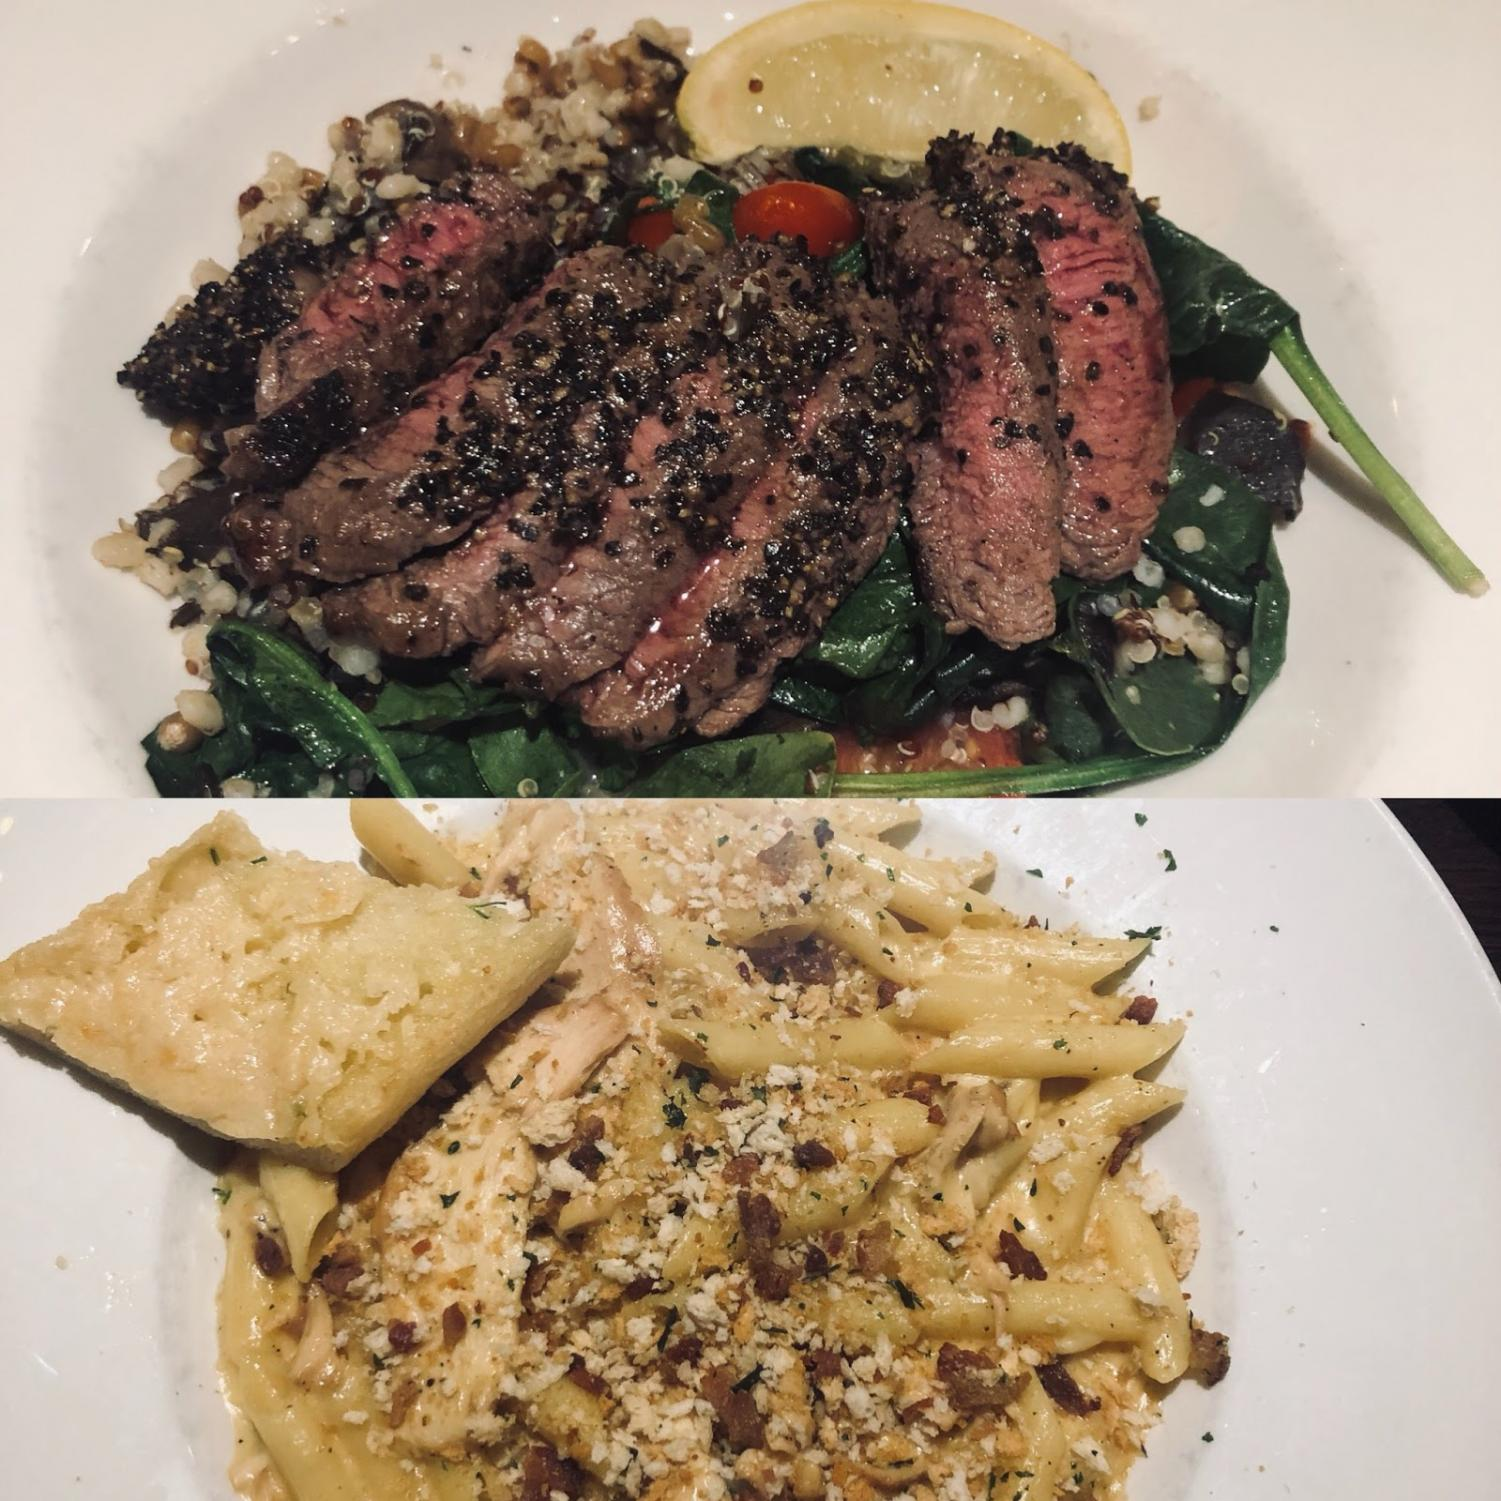 Top image: The Cracked Pepper Sirloin is served over ancient grain. Bottom image: The Bock & Cheese Pasta comes with a creamy cheese sauce topped with breadcrumbs.